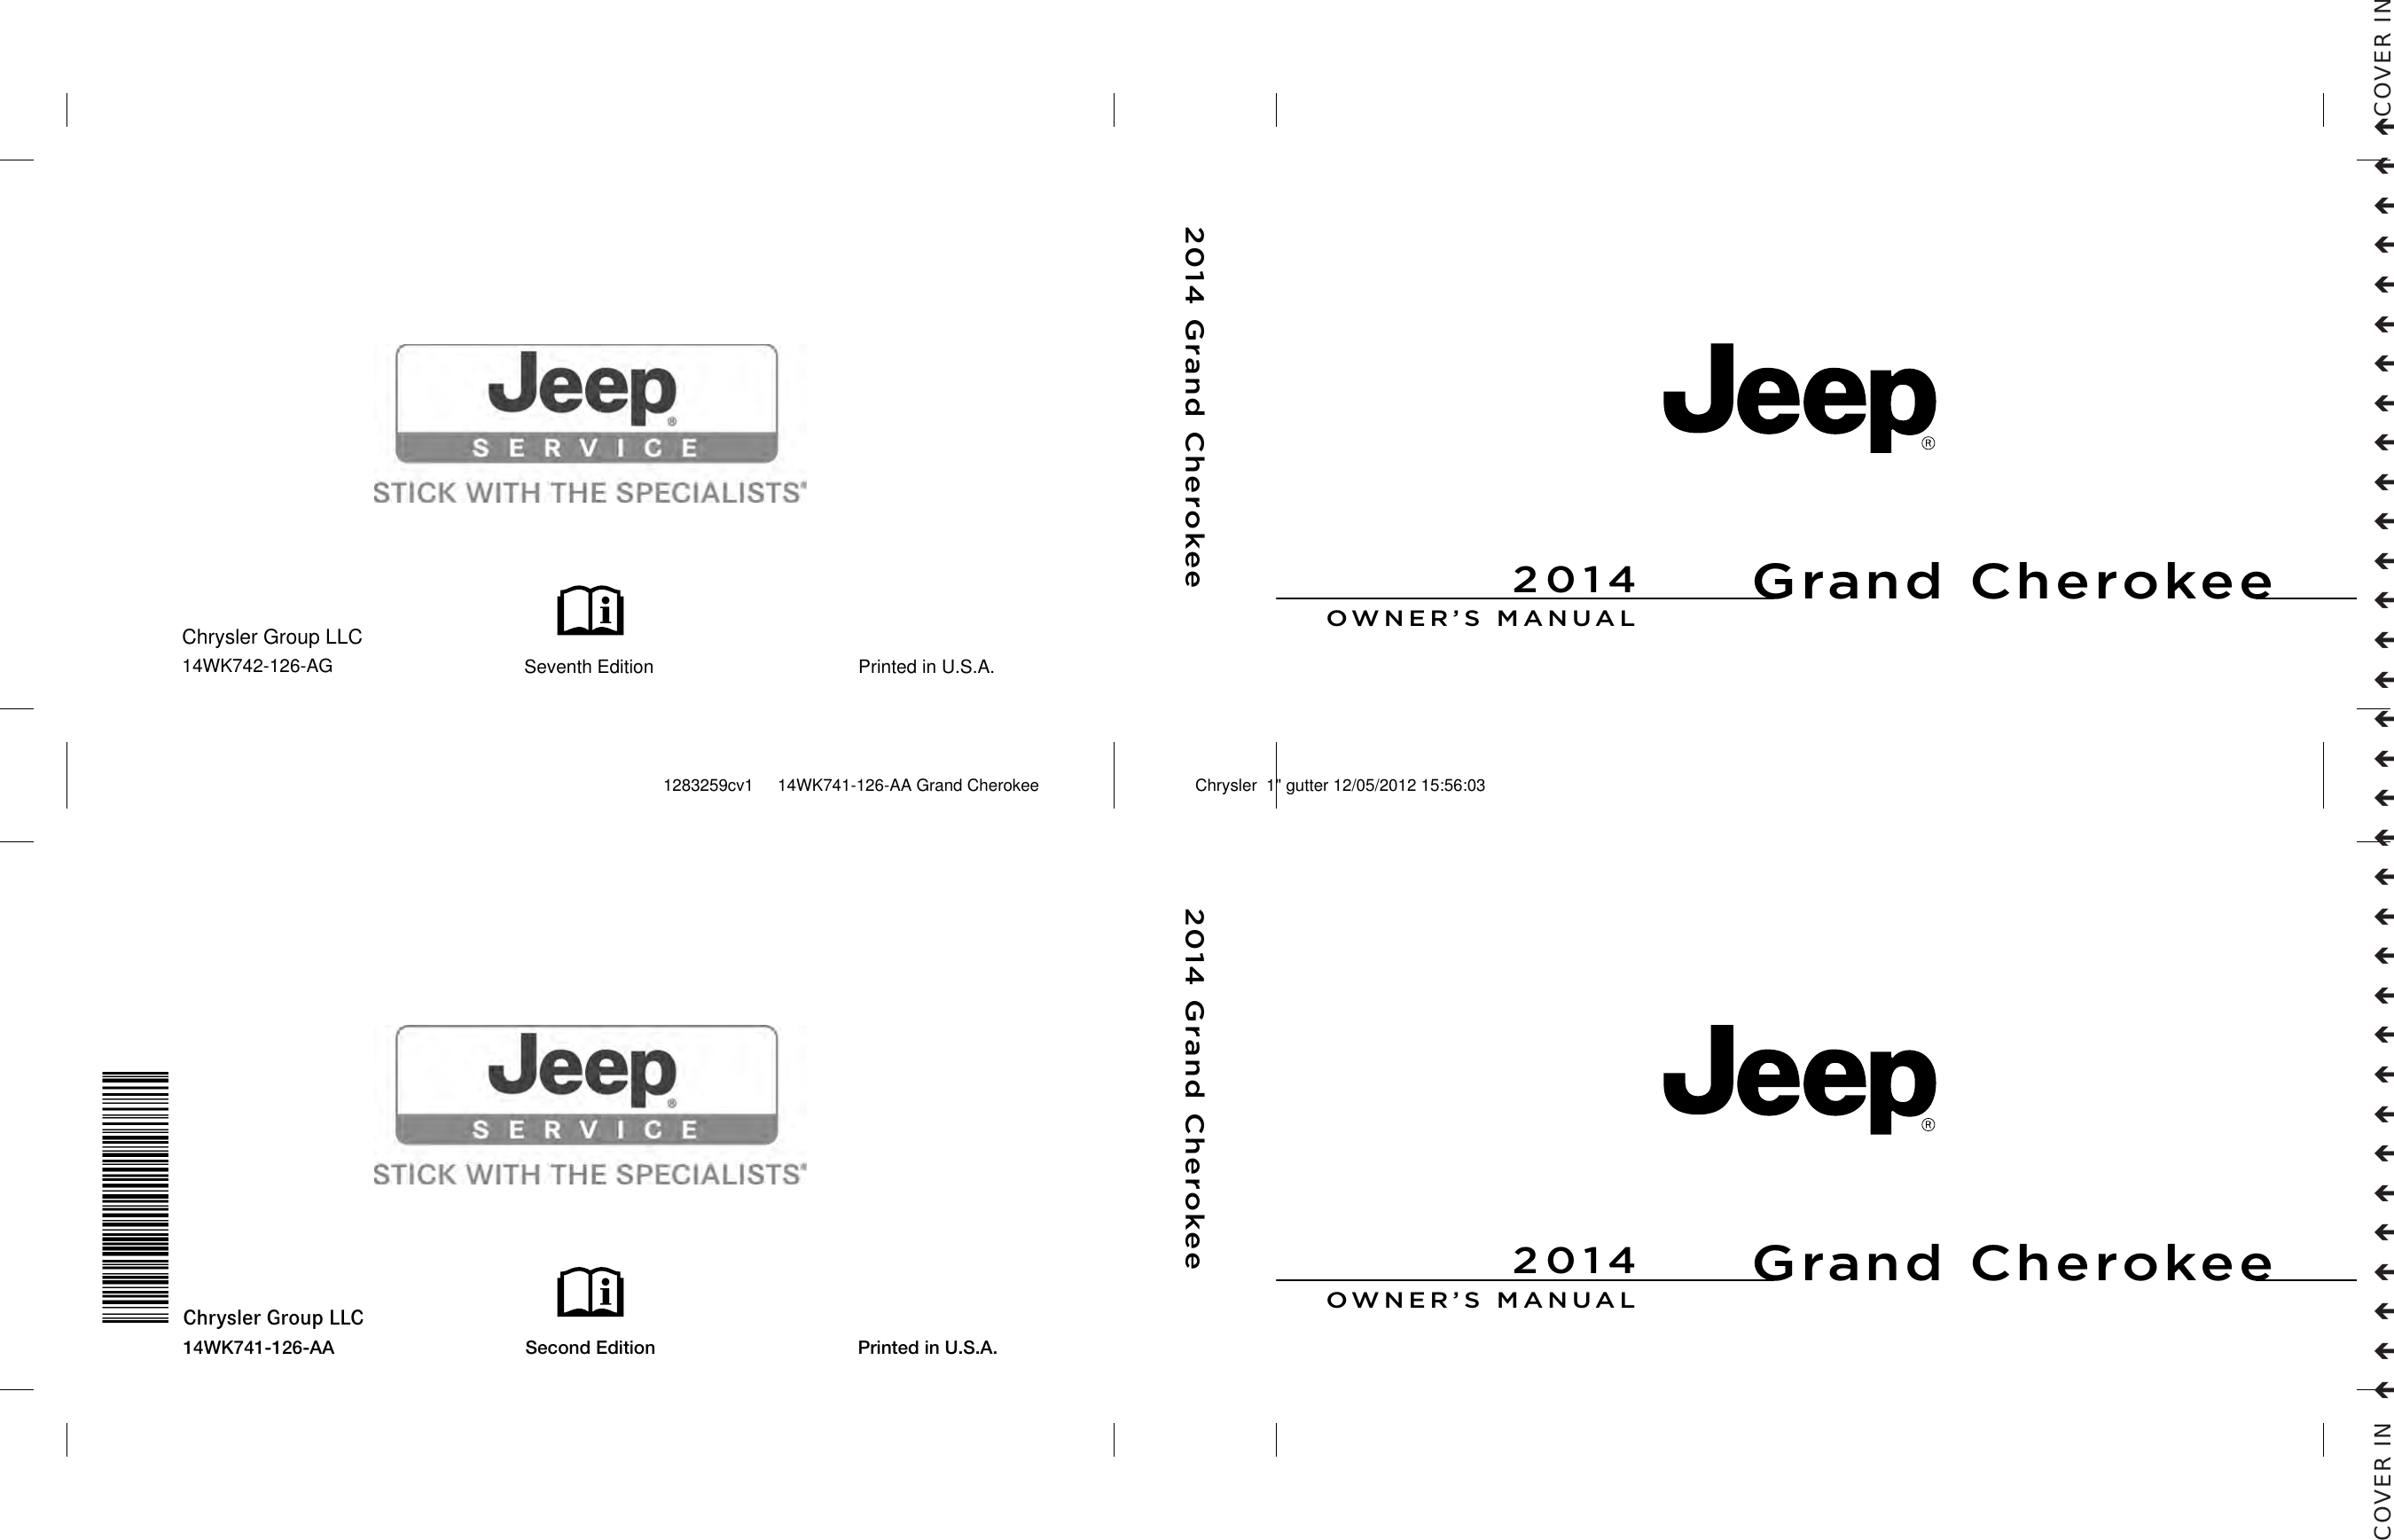 Jeep 2014 Grand Cherokee Srt Owners Manual Owner's